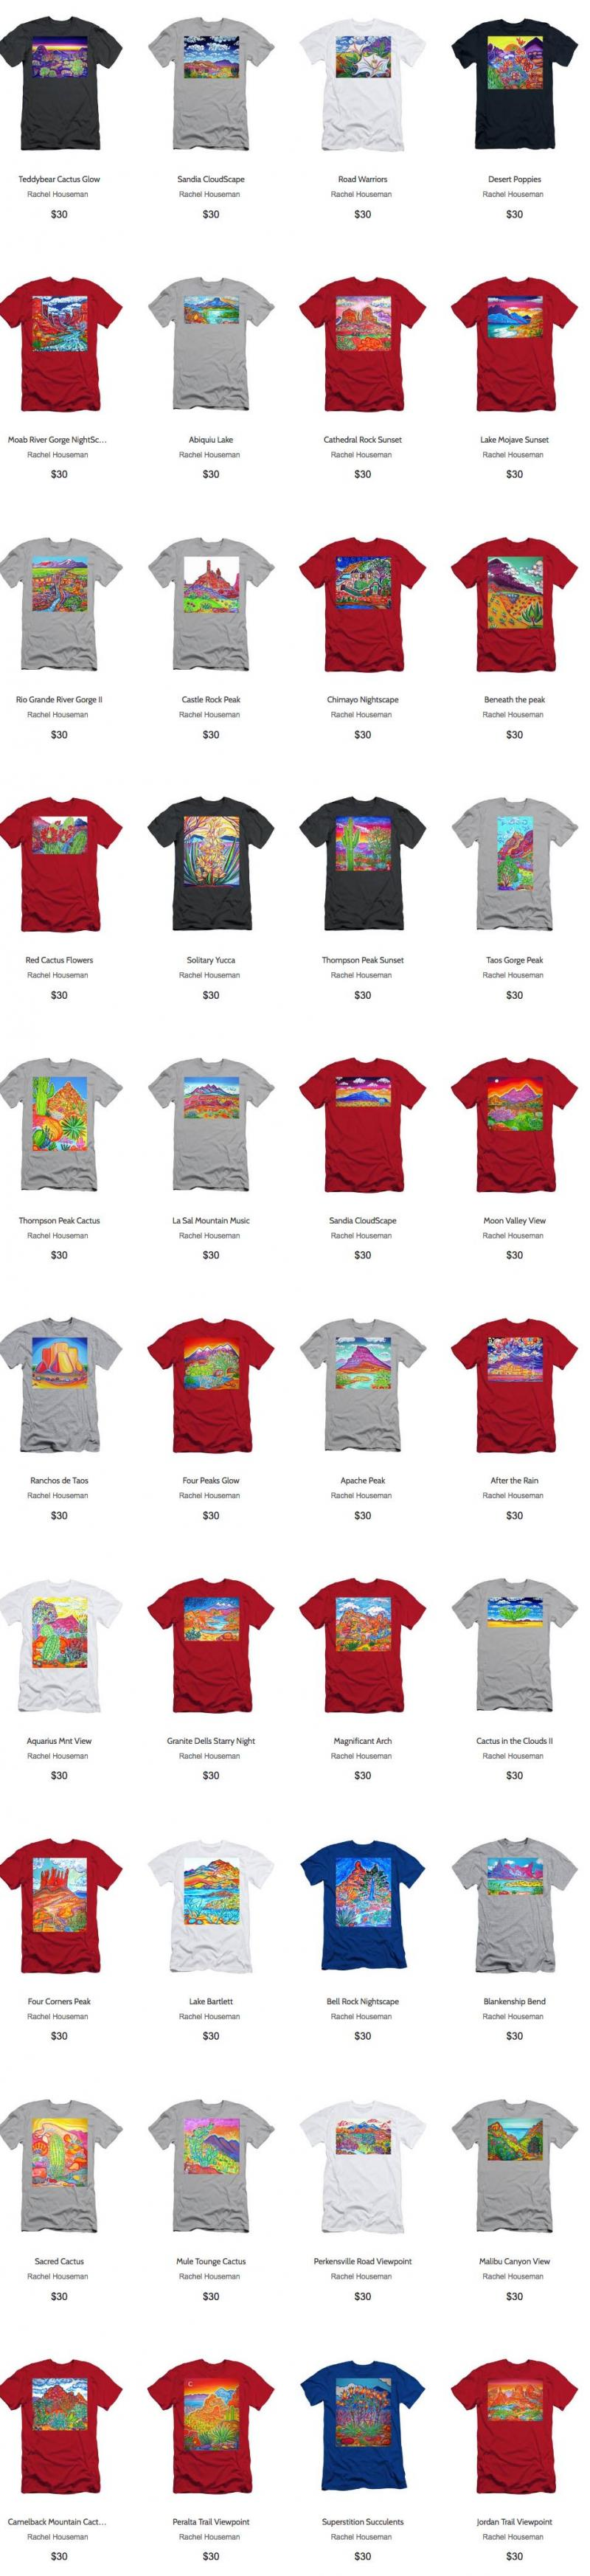 Rachel Houseman, T-Shirts, Online Gifts, ColorScapes T-Shirts, Gift Ideas, Art